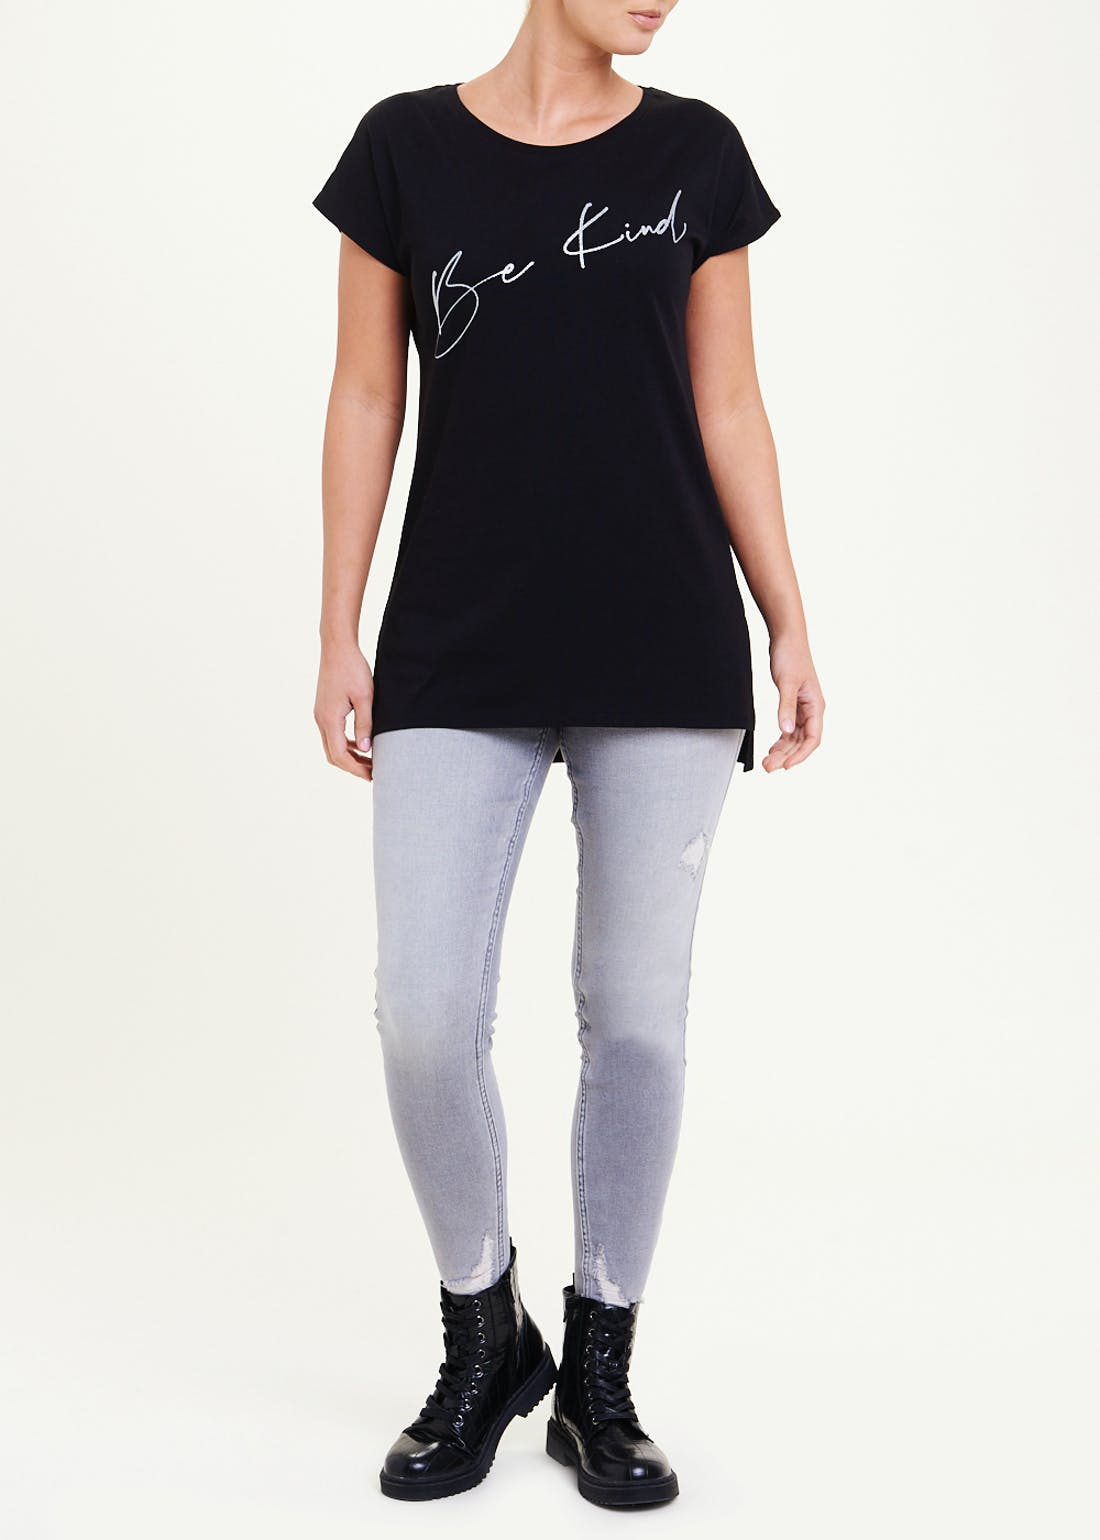 Be Kind Longline Slogan T-Shirt